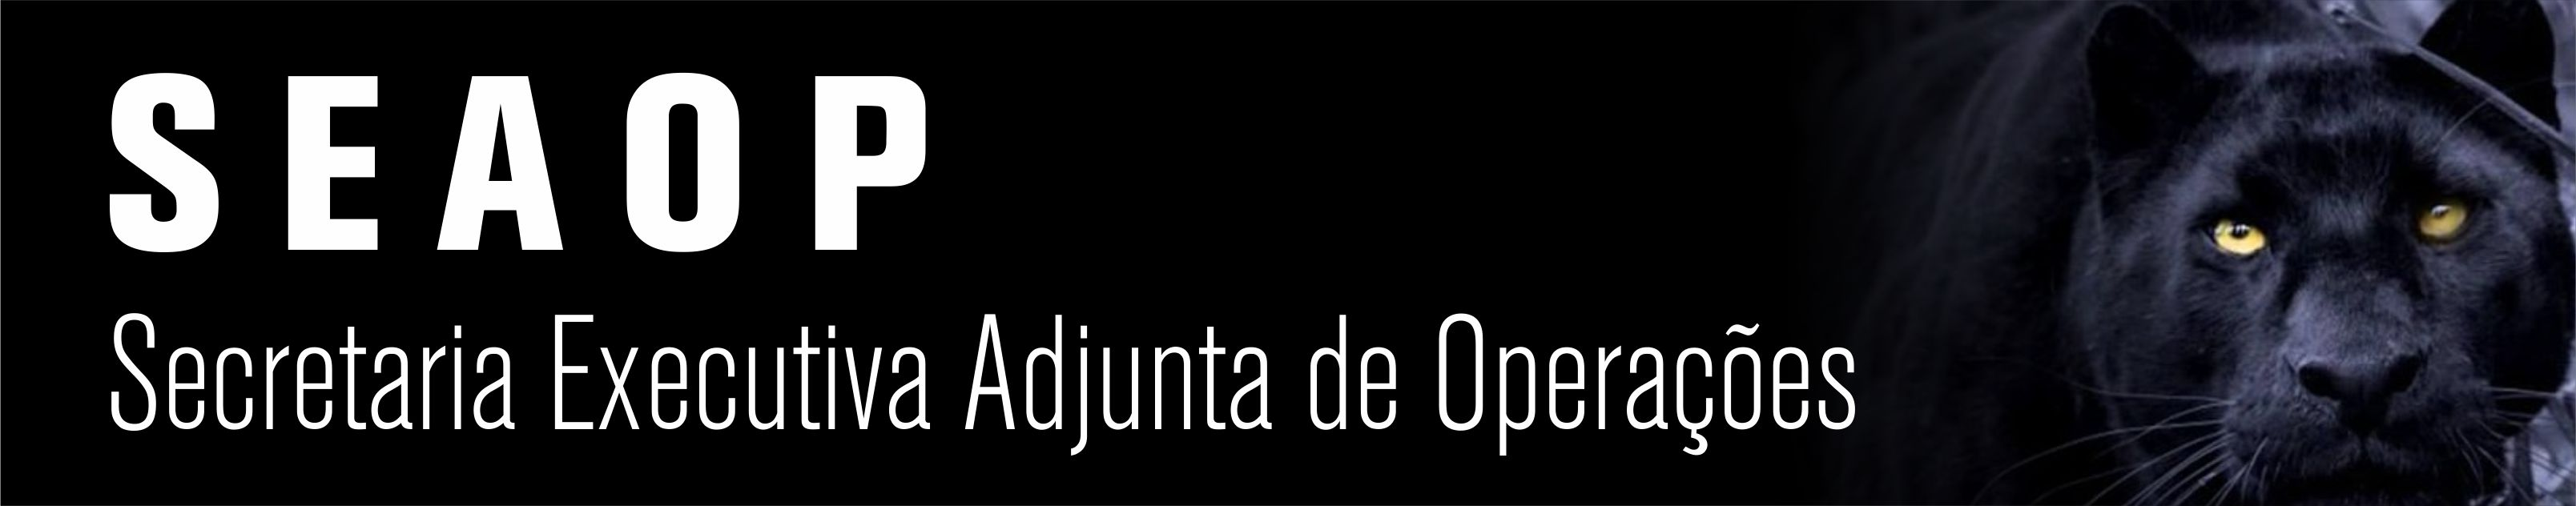 Secretaria Executiva Adjunta de Opera��es